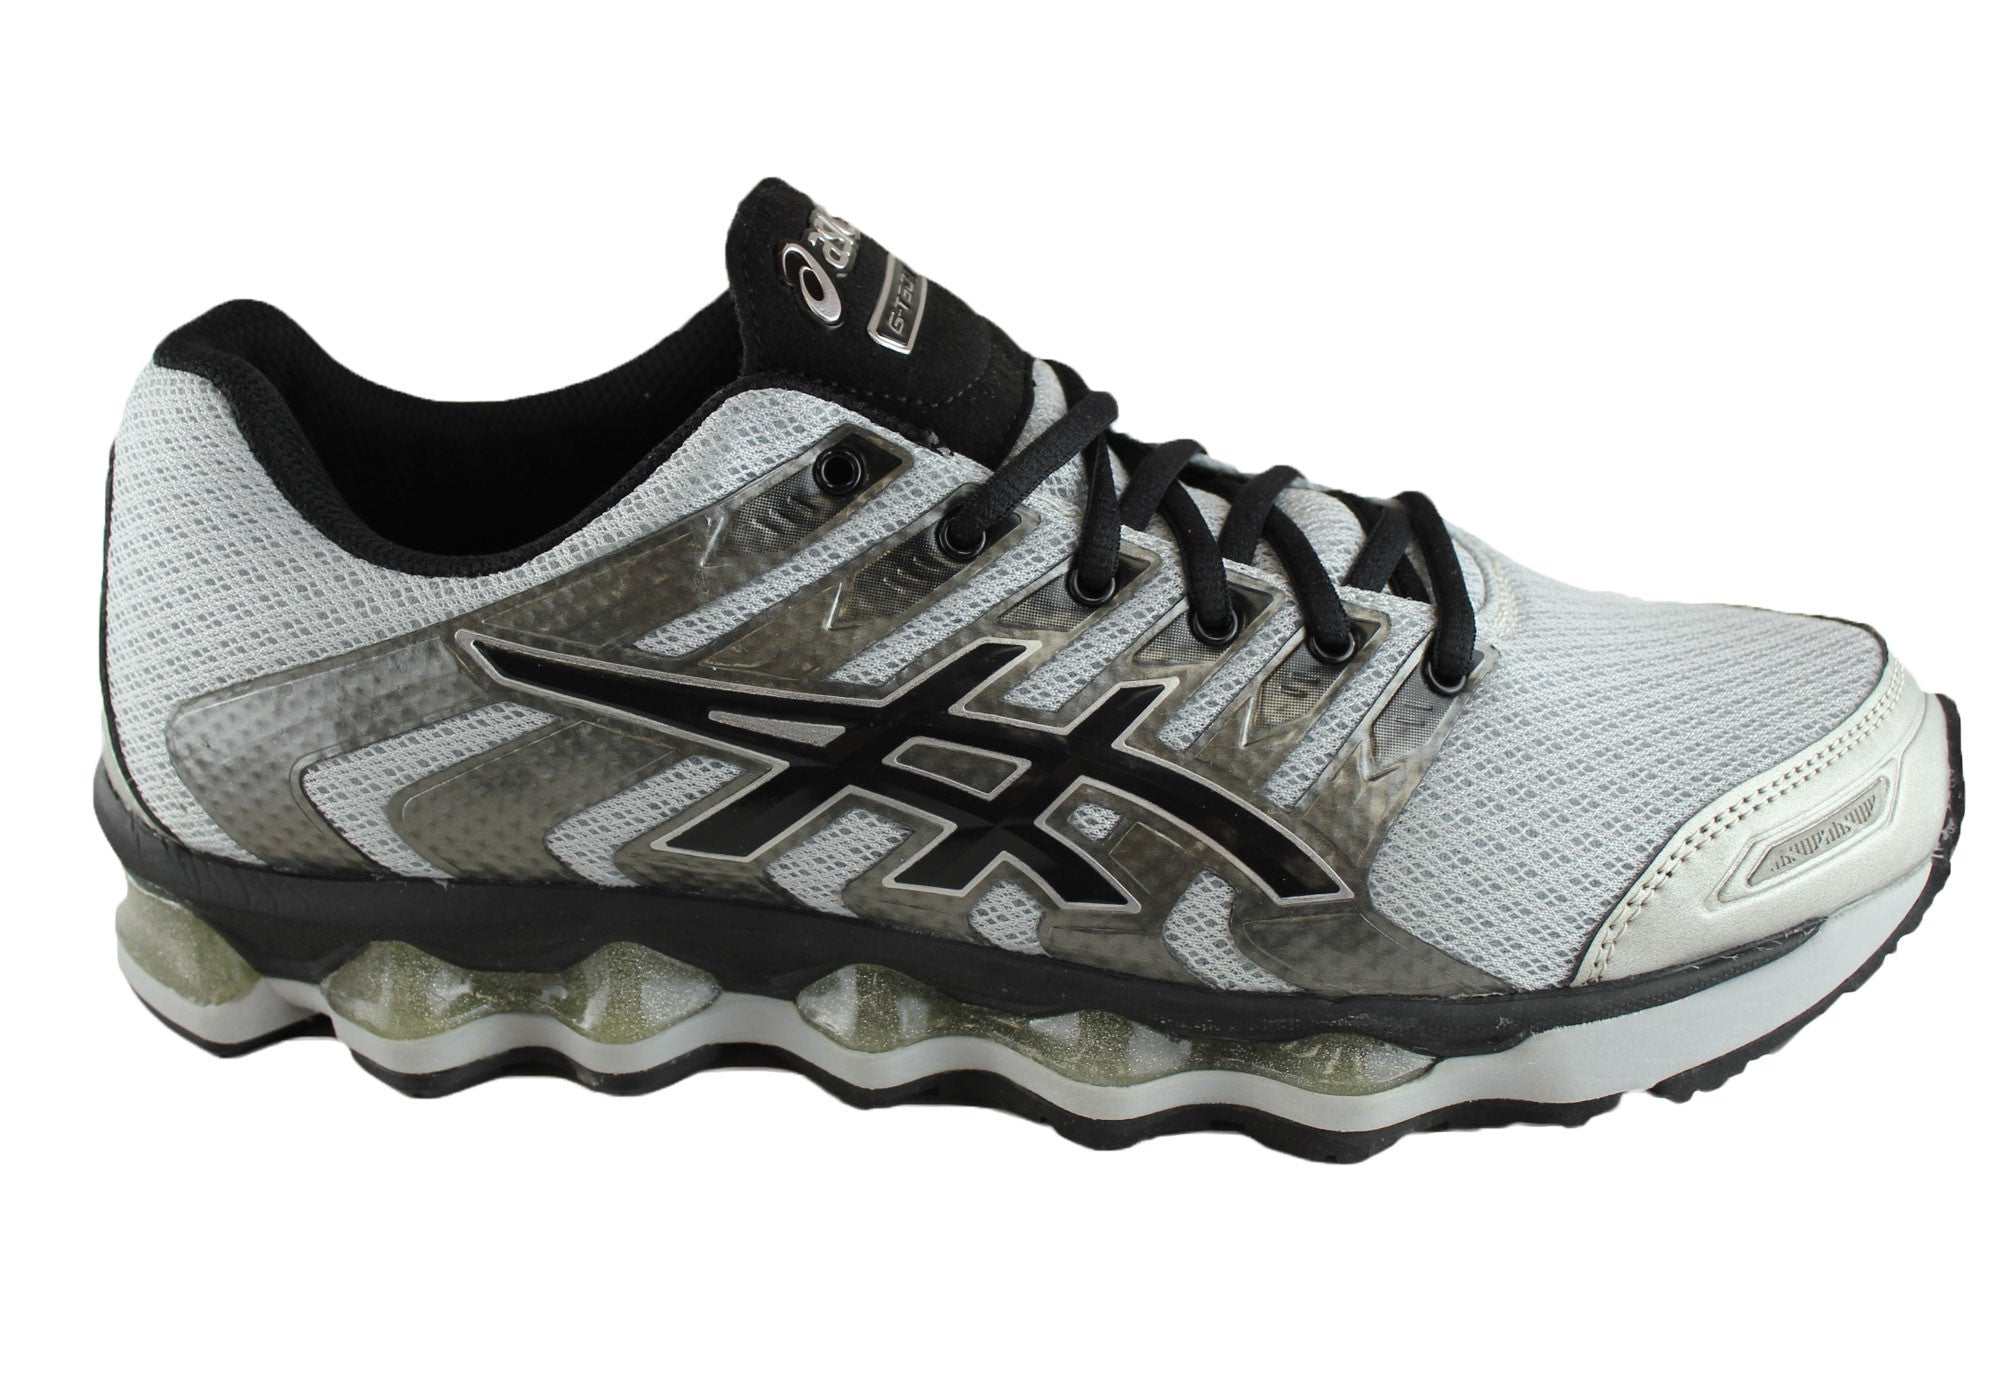 New Shoes Asics Uomo G-T3D.1 Premium Cushioned Running Shoes New 802615